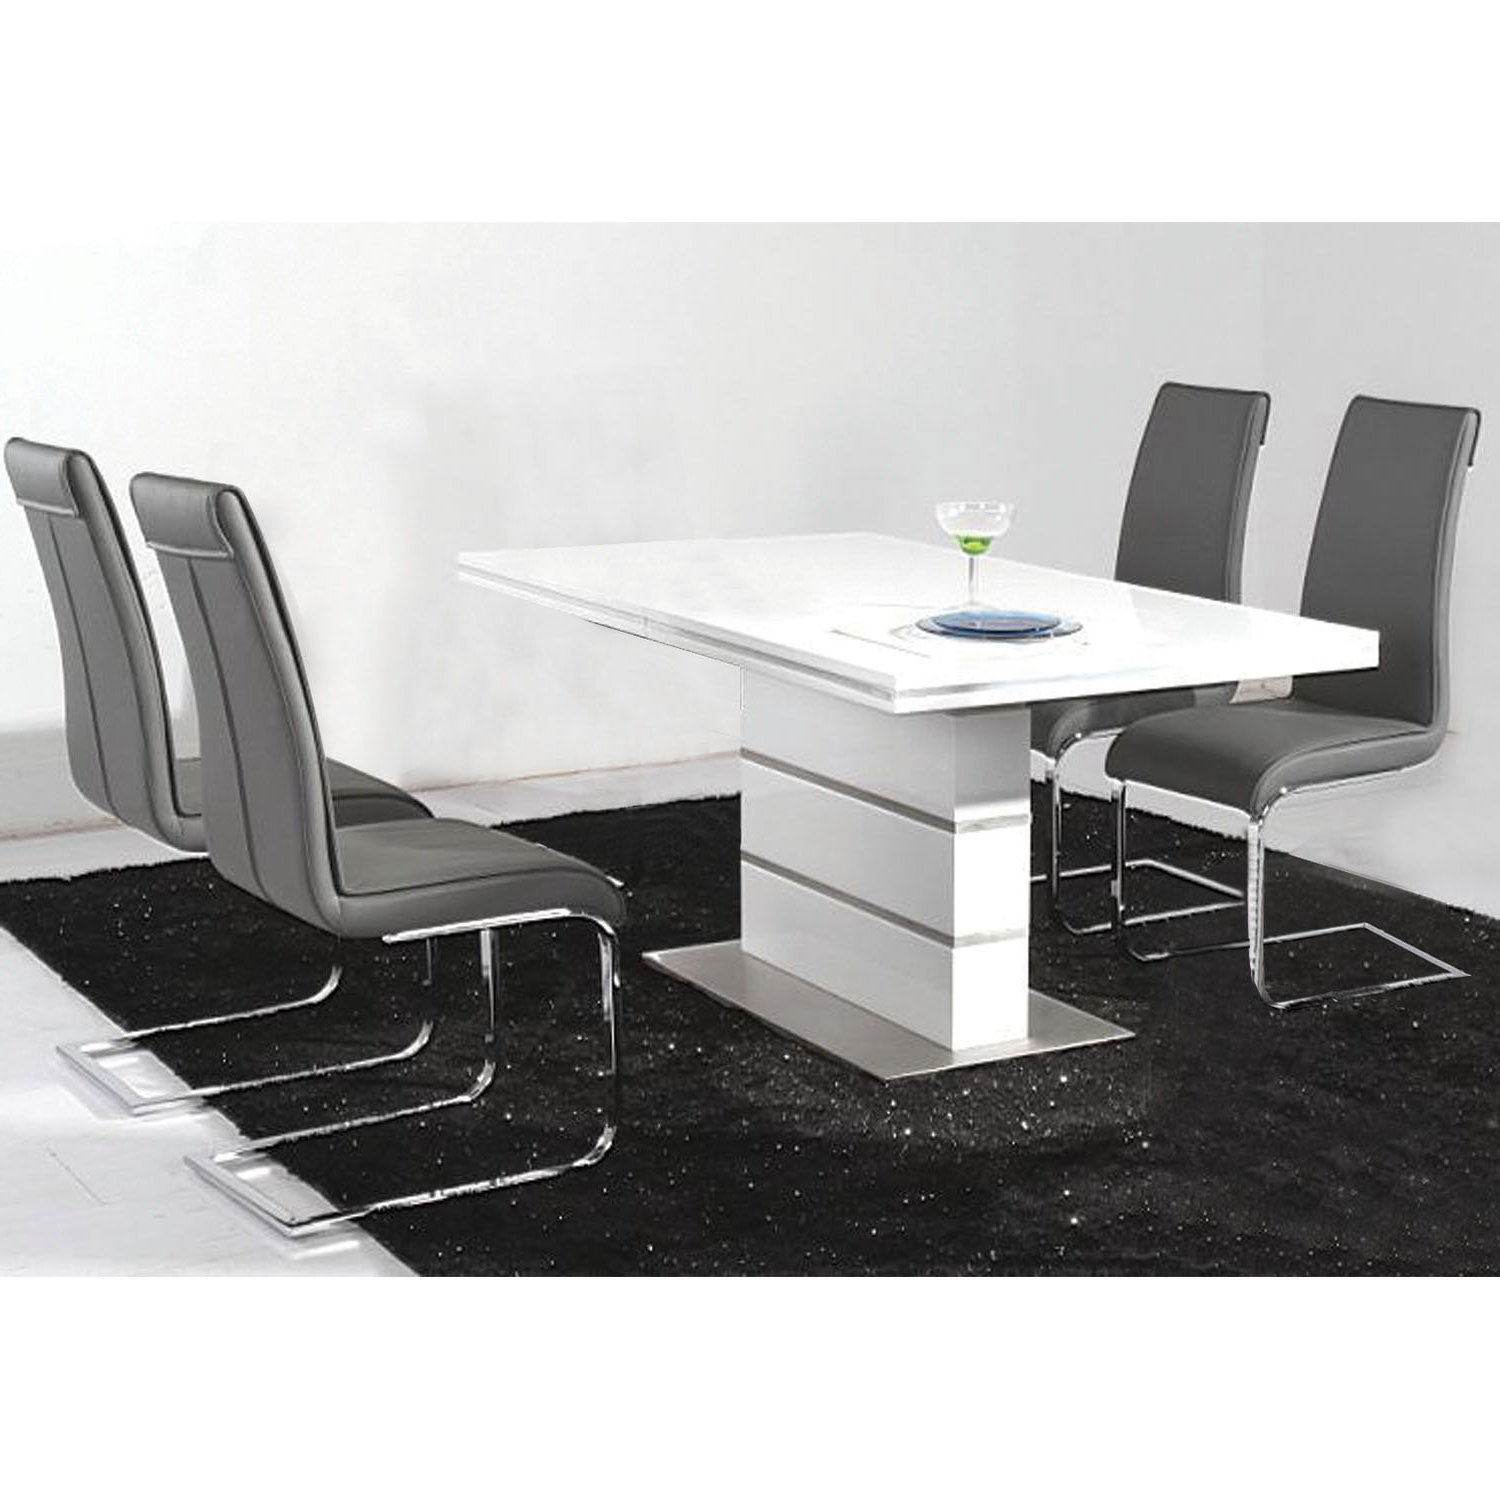 Awesome Dining Set With White High Gloss Dining Table With Metal Pertaining To Well Known Black Gloss Dining Sets (View 21 of 25)